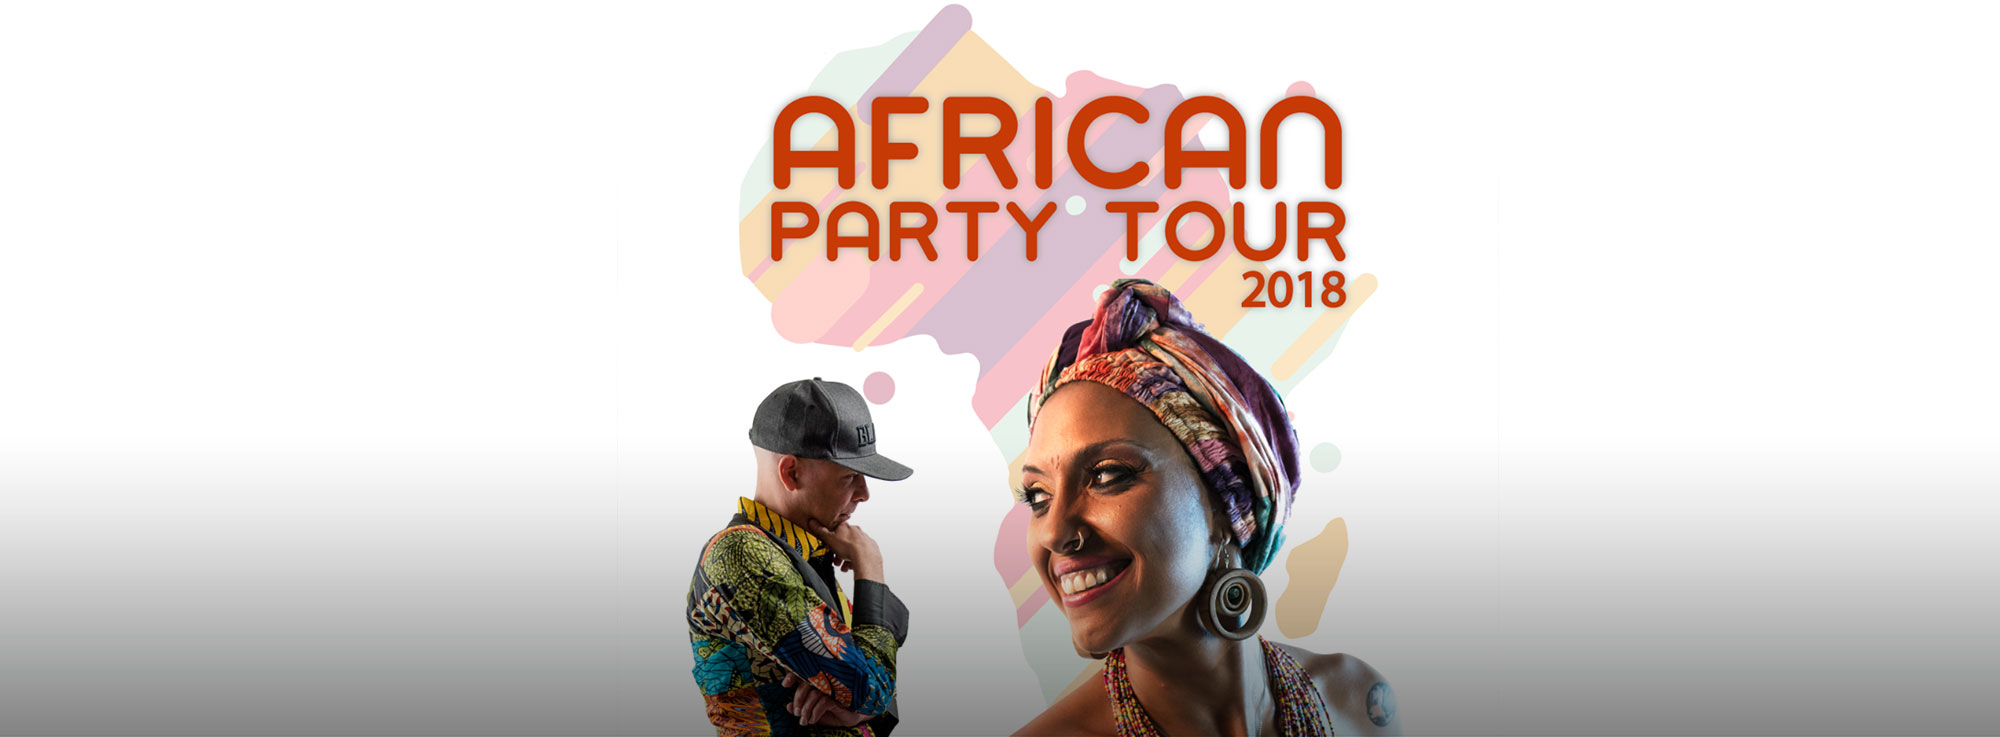 Sava: African Party